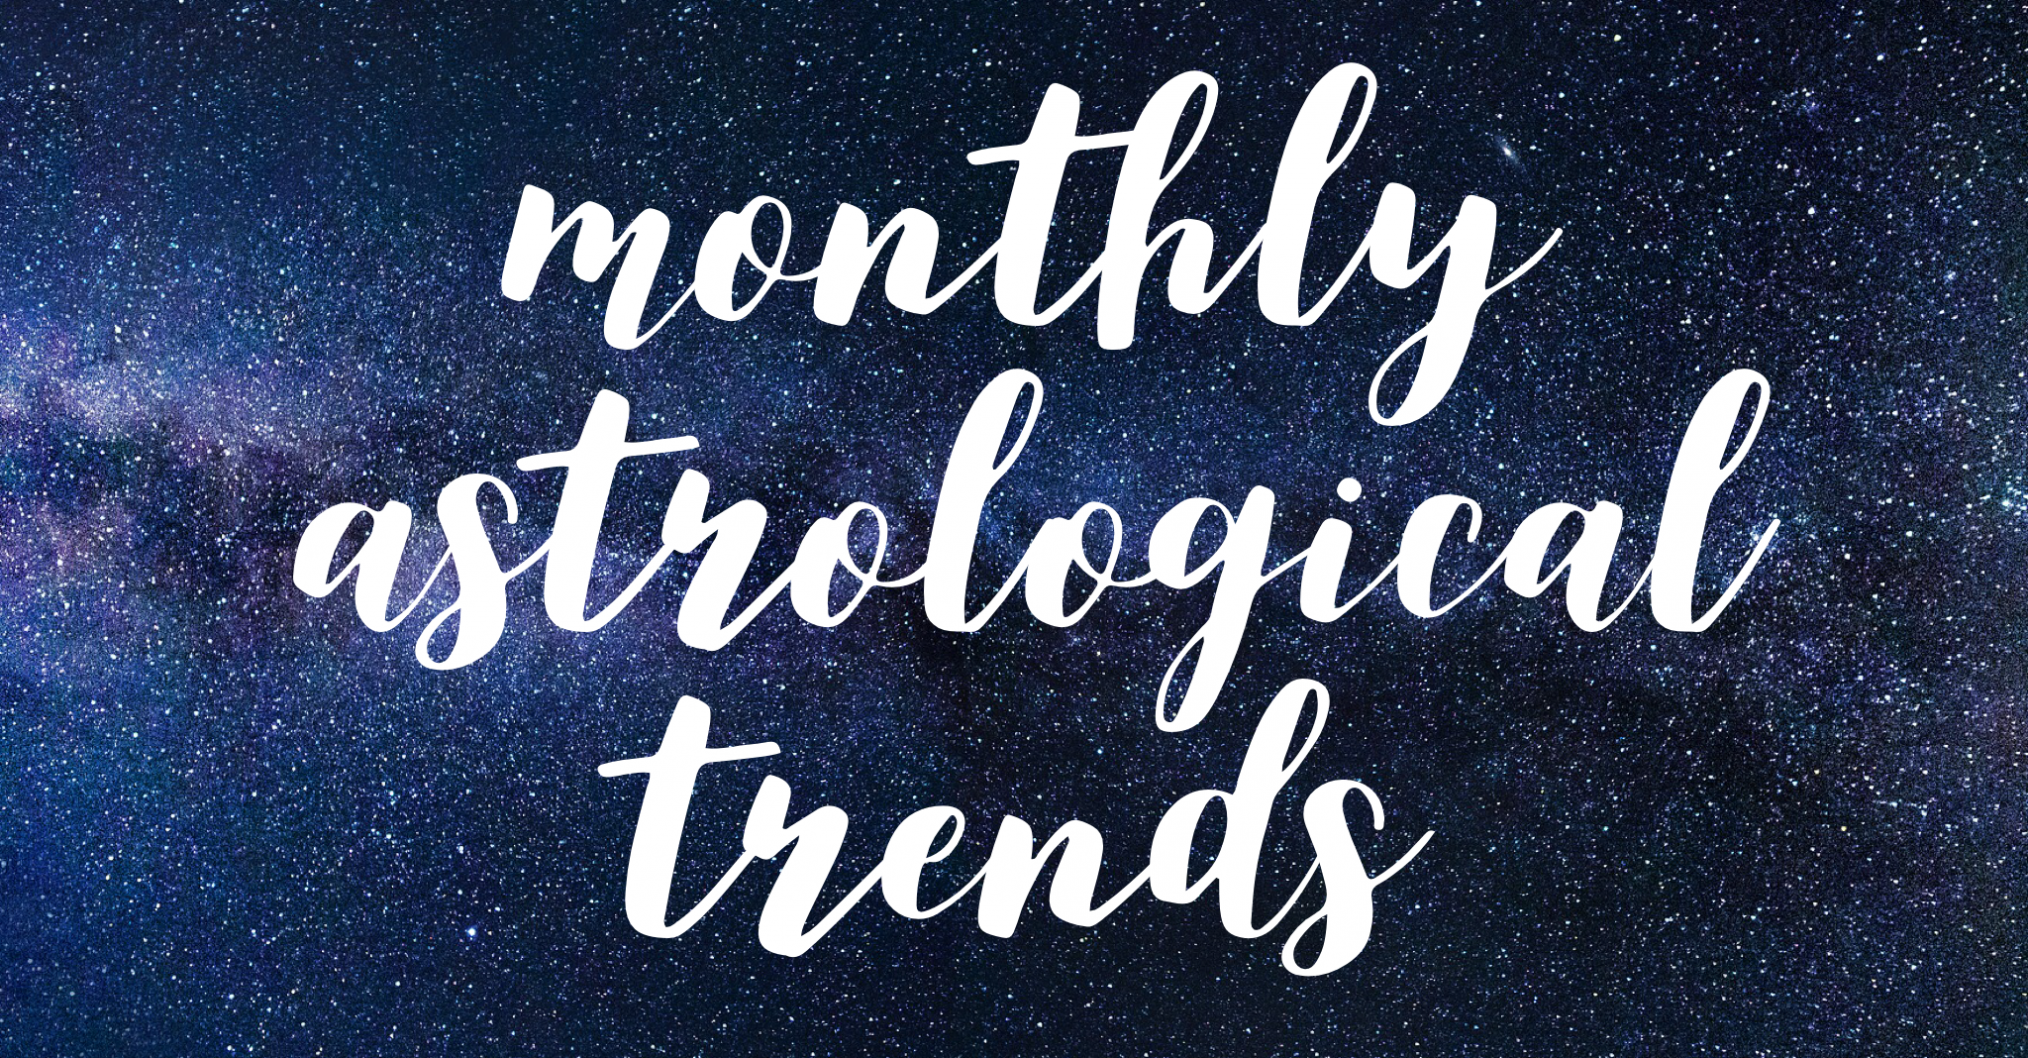 Overview: Astrological Trends for April 2018